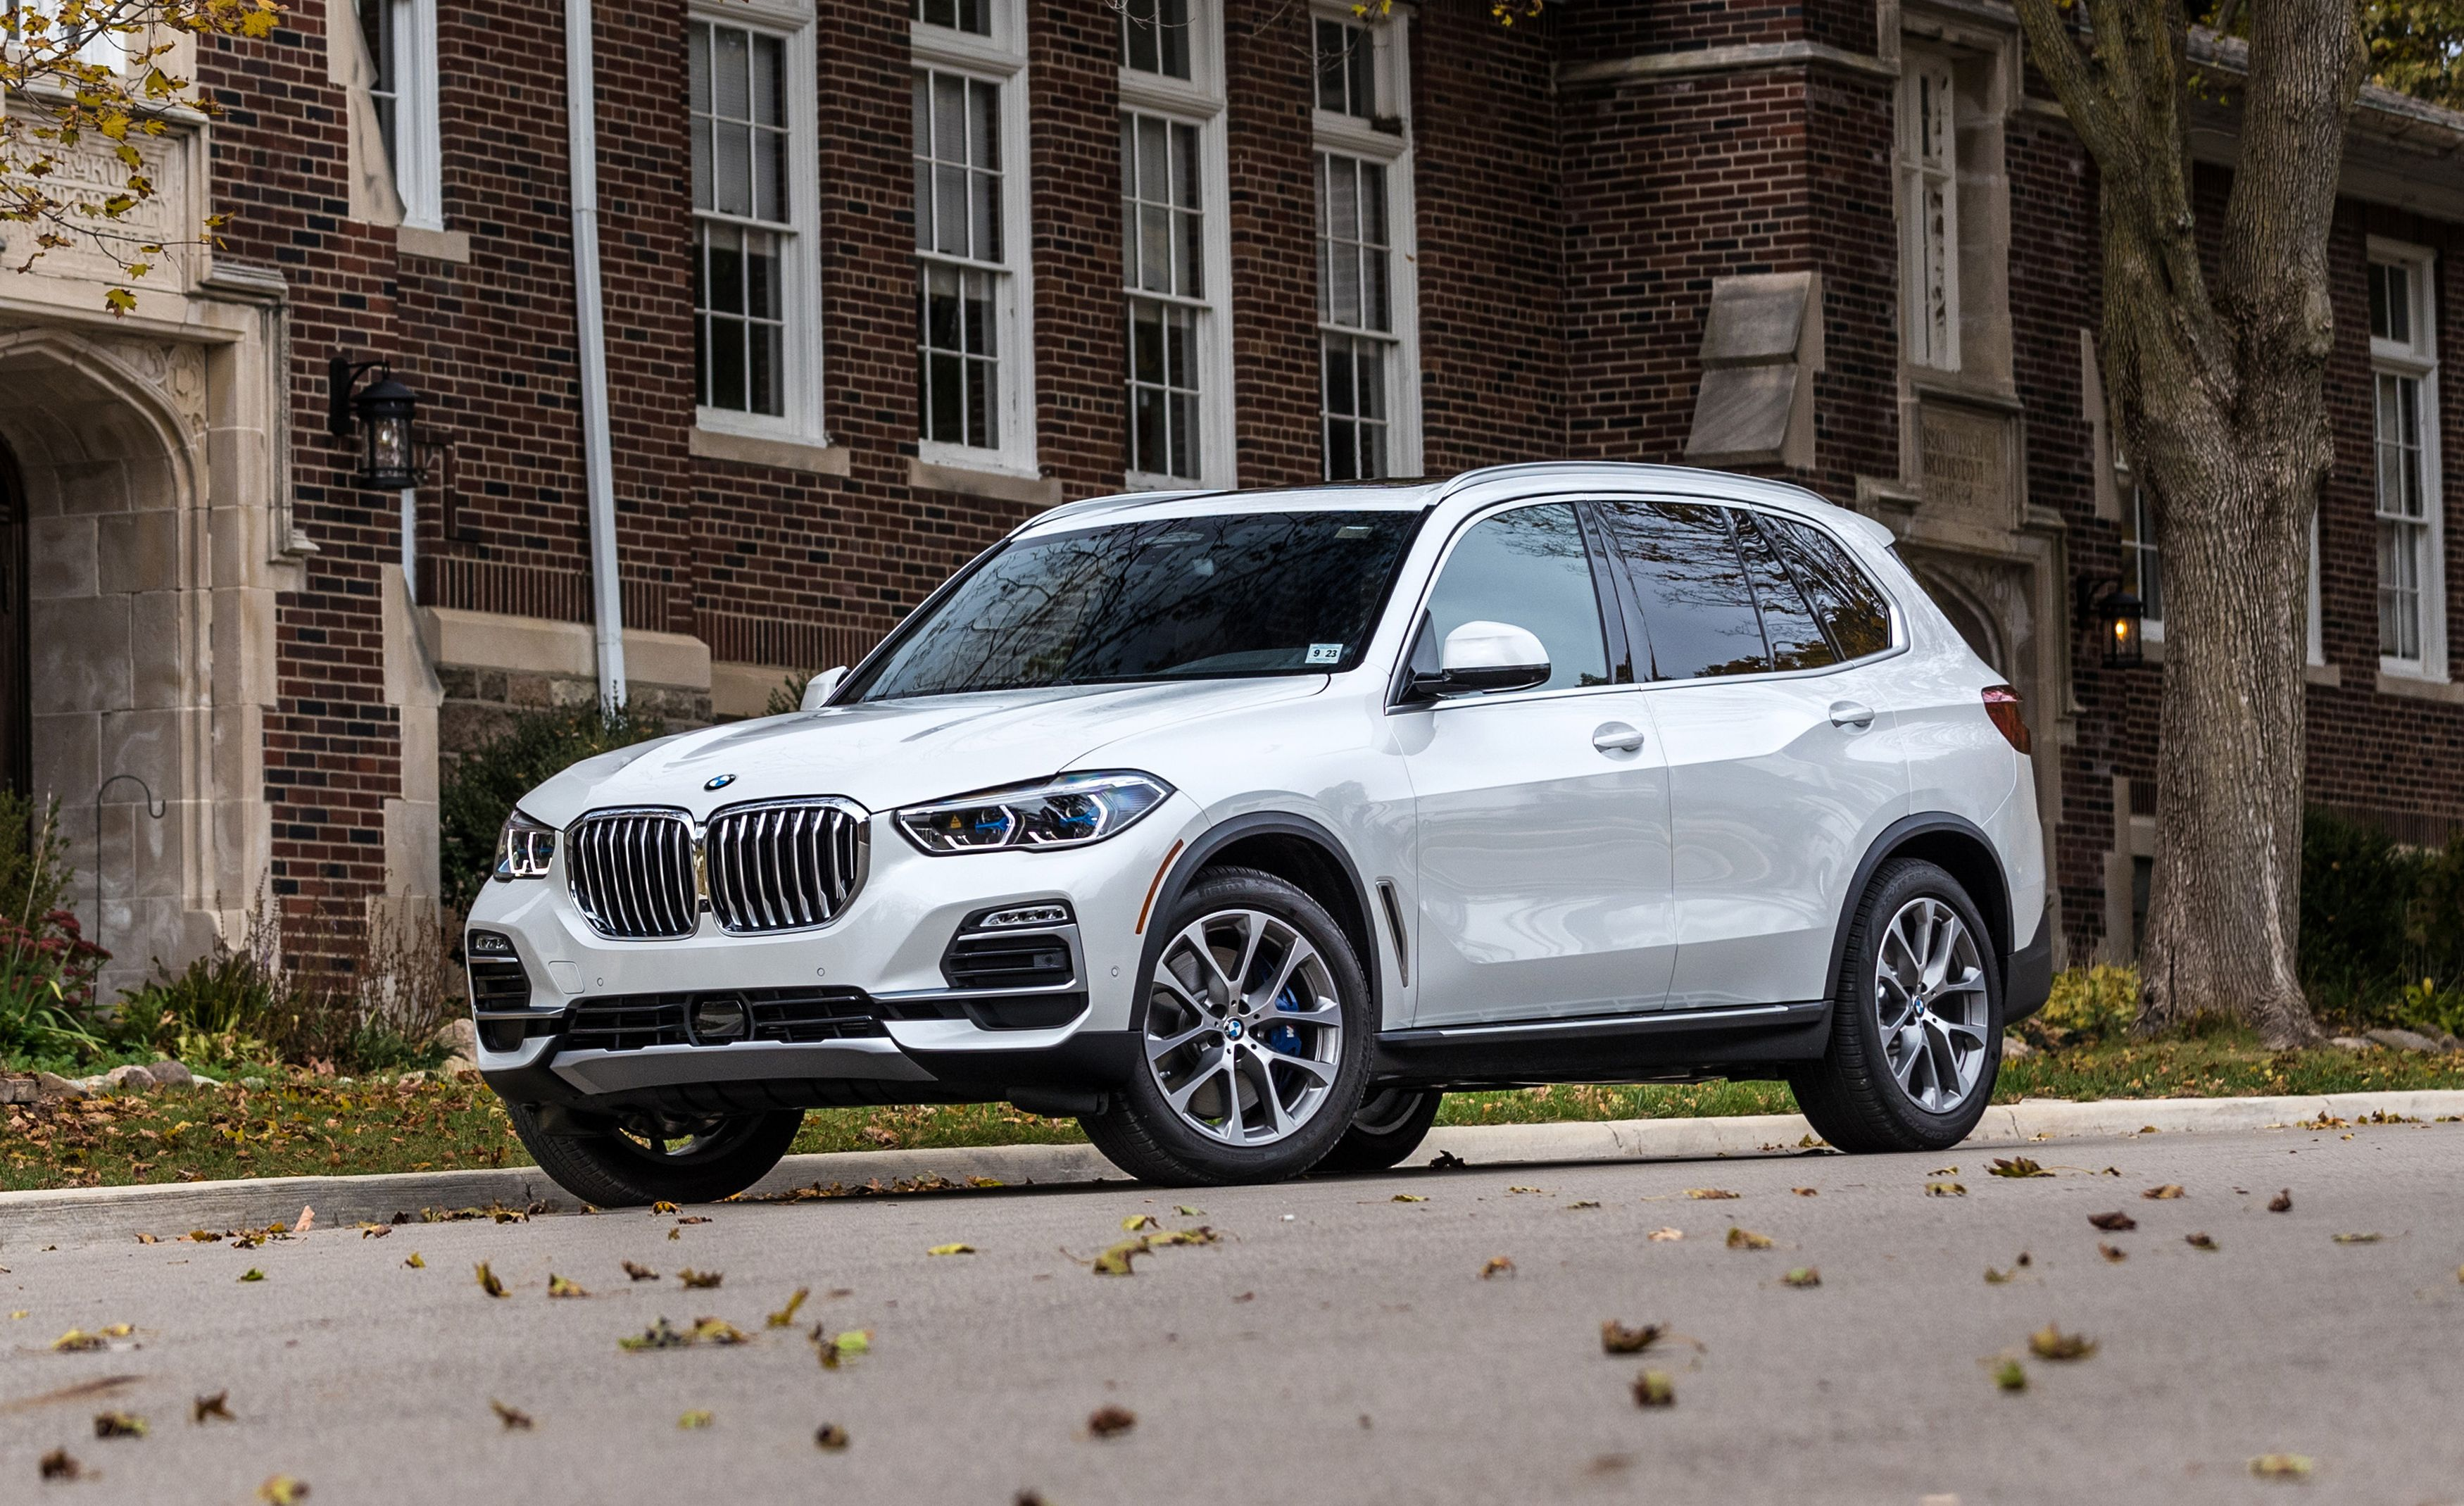 2019 BMW X5 Review, Pricing, and Specs